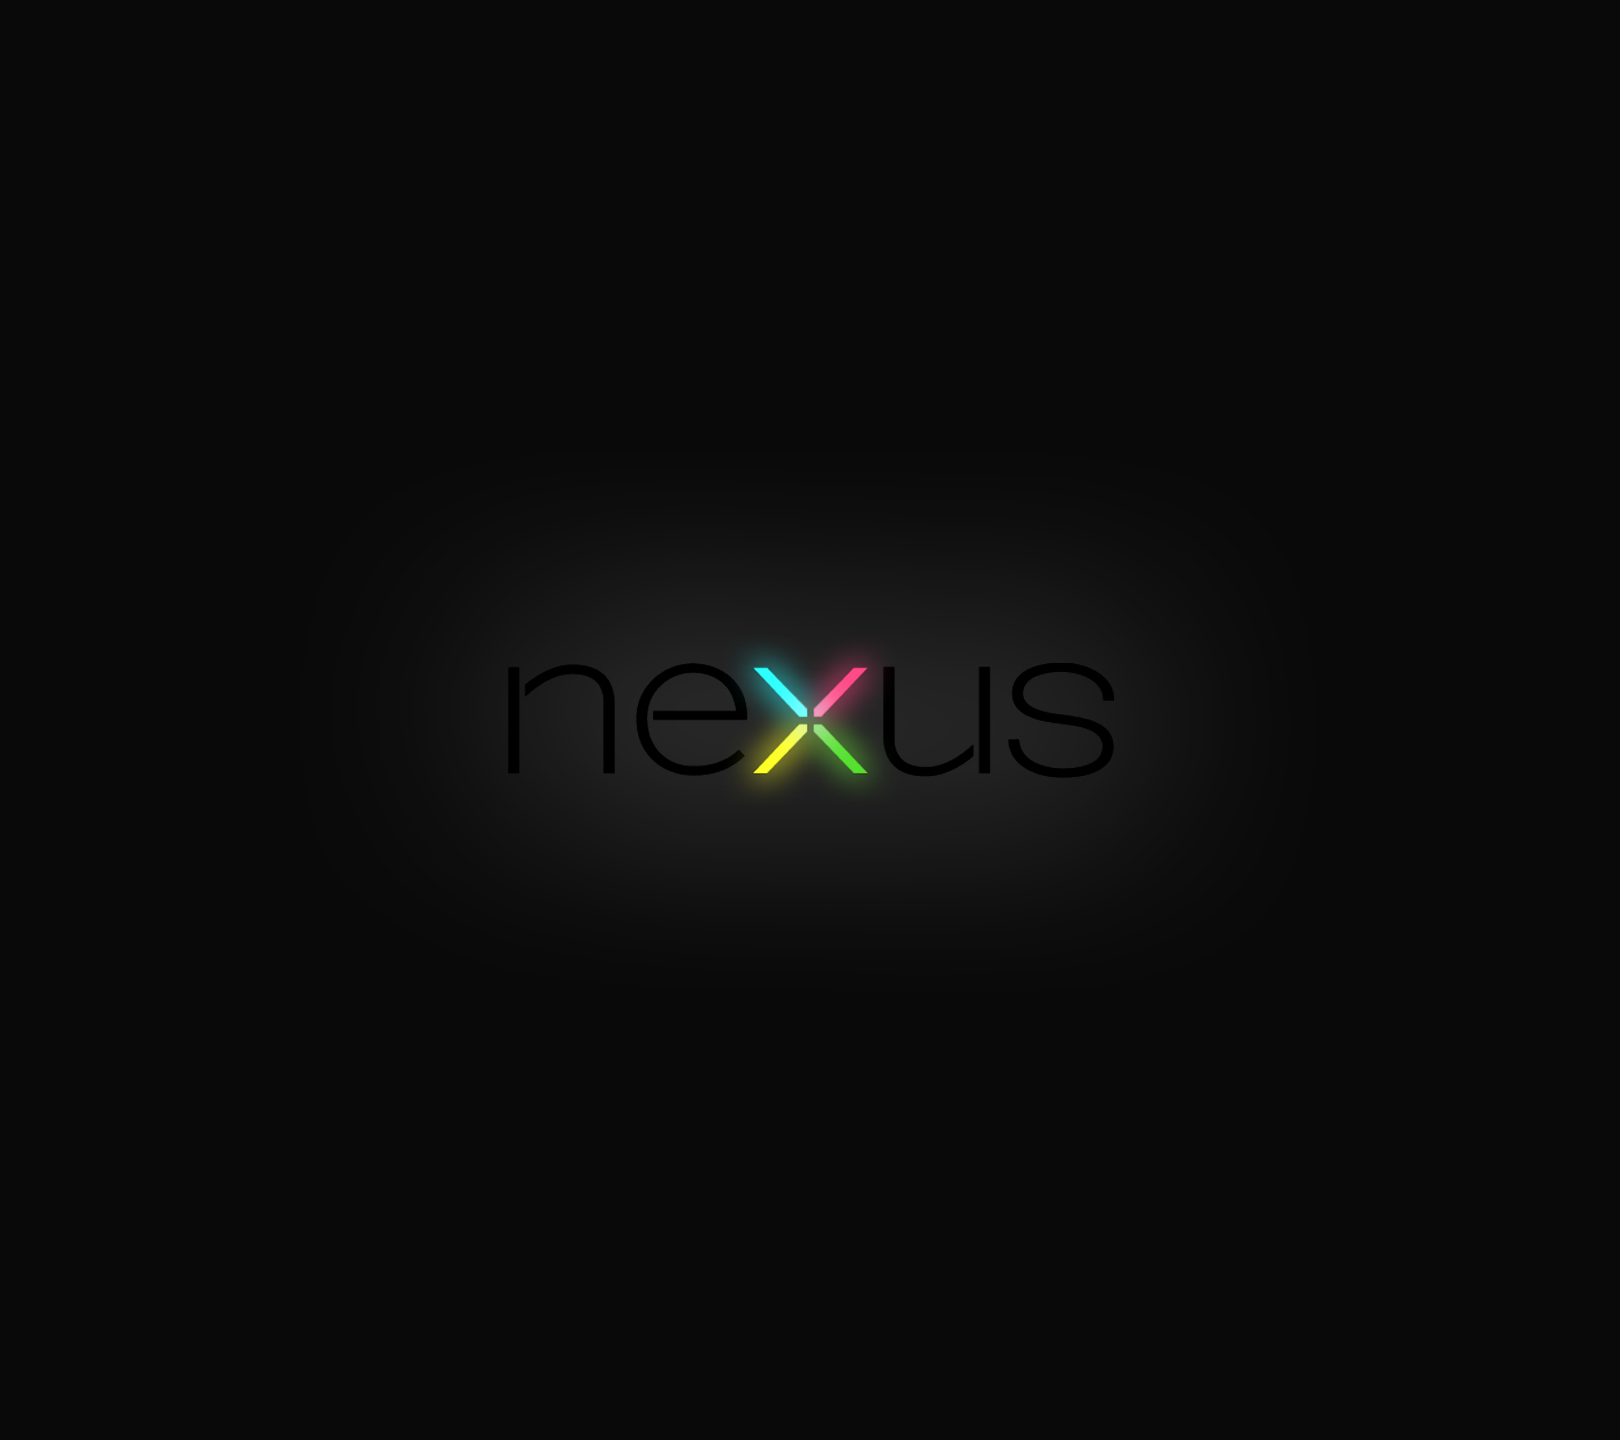 Nexus 4 Wallpaper Size